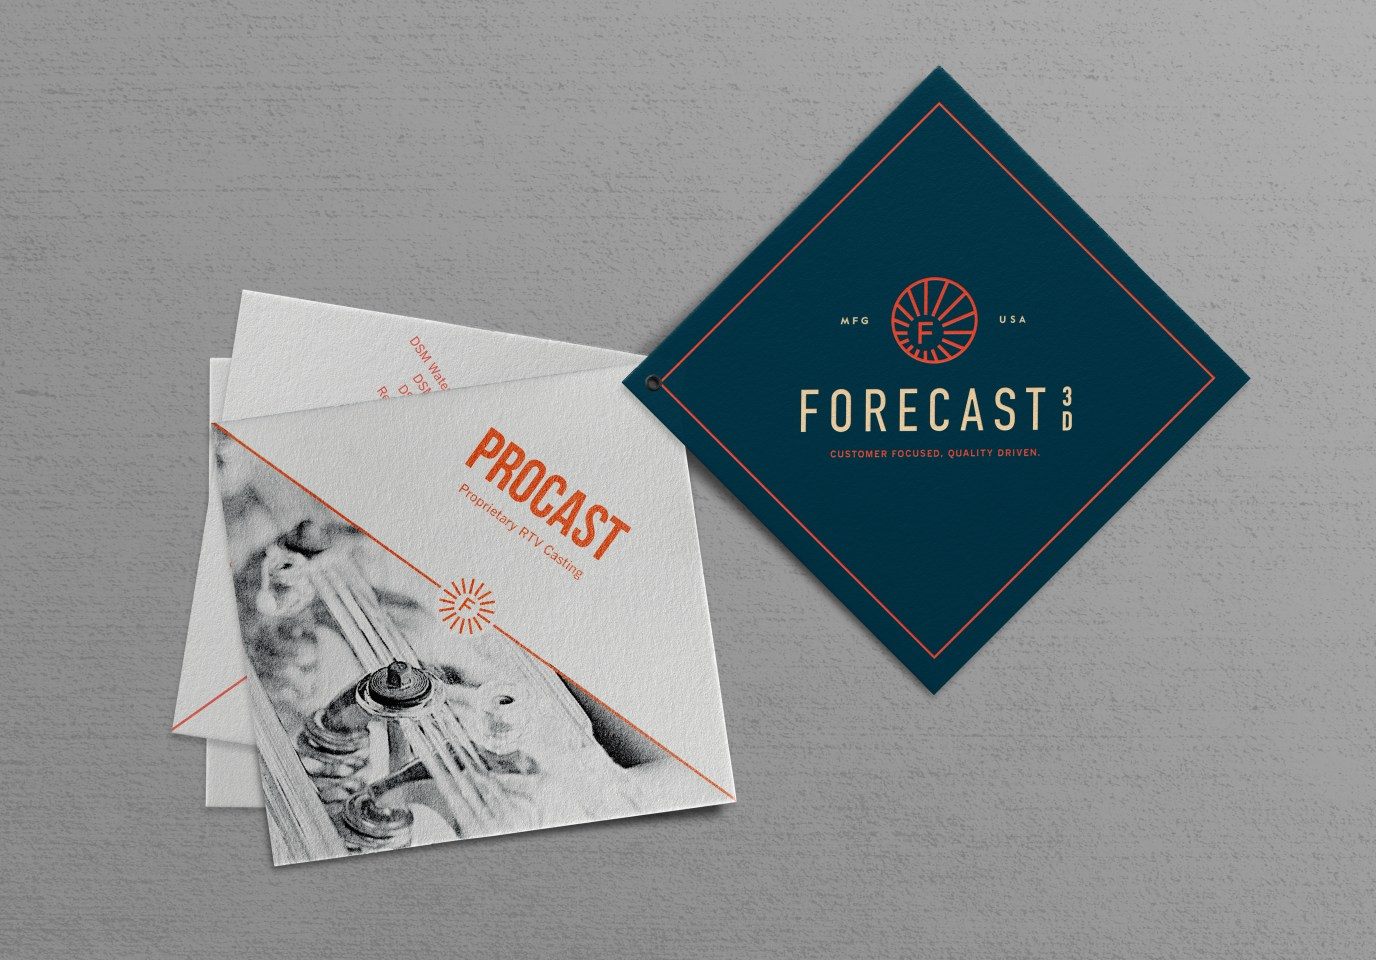 Forecast3D product cards